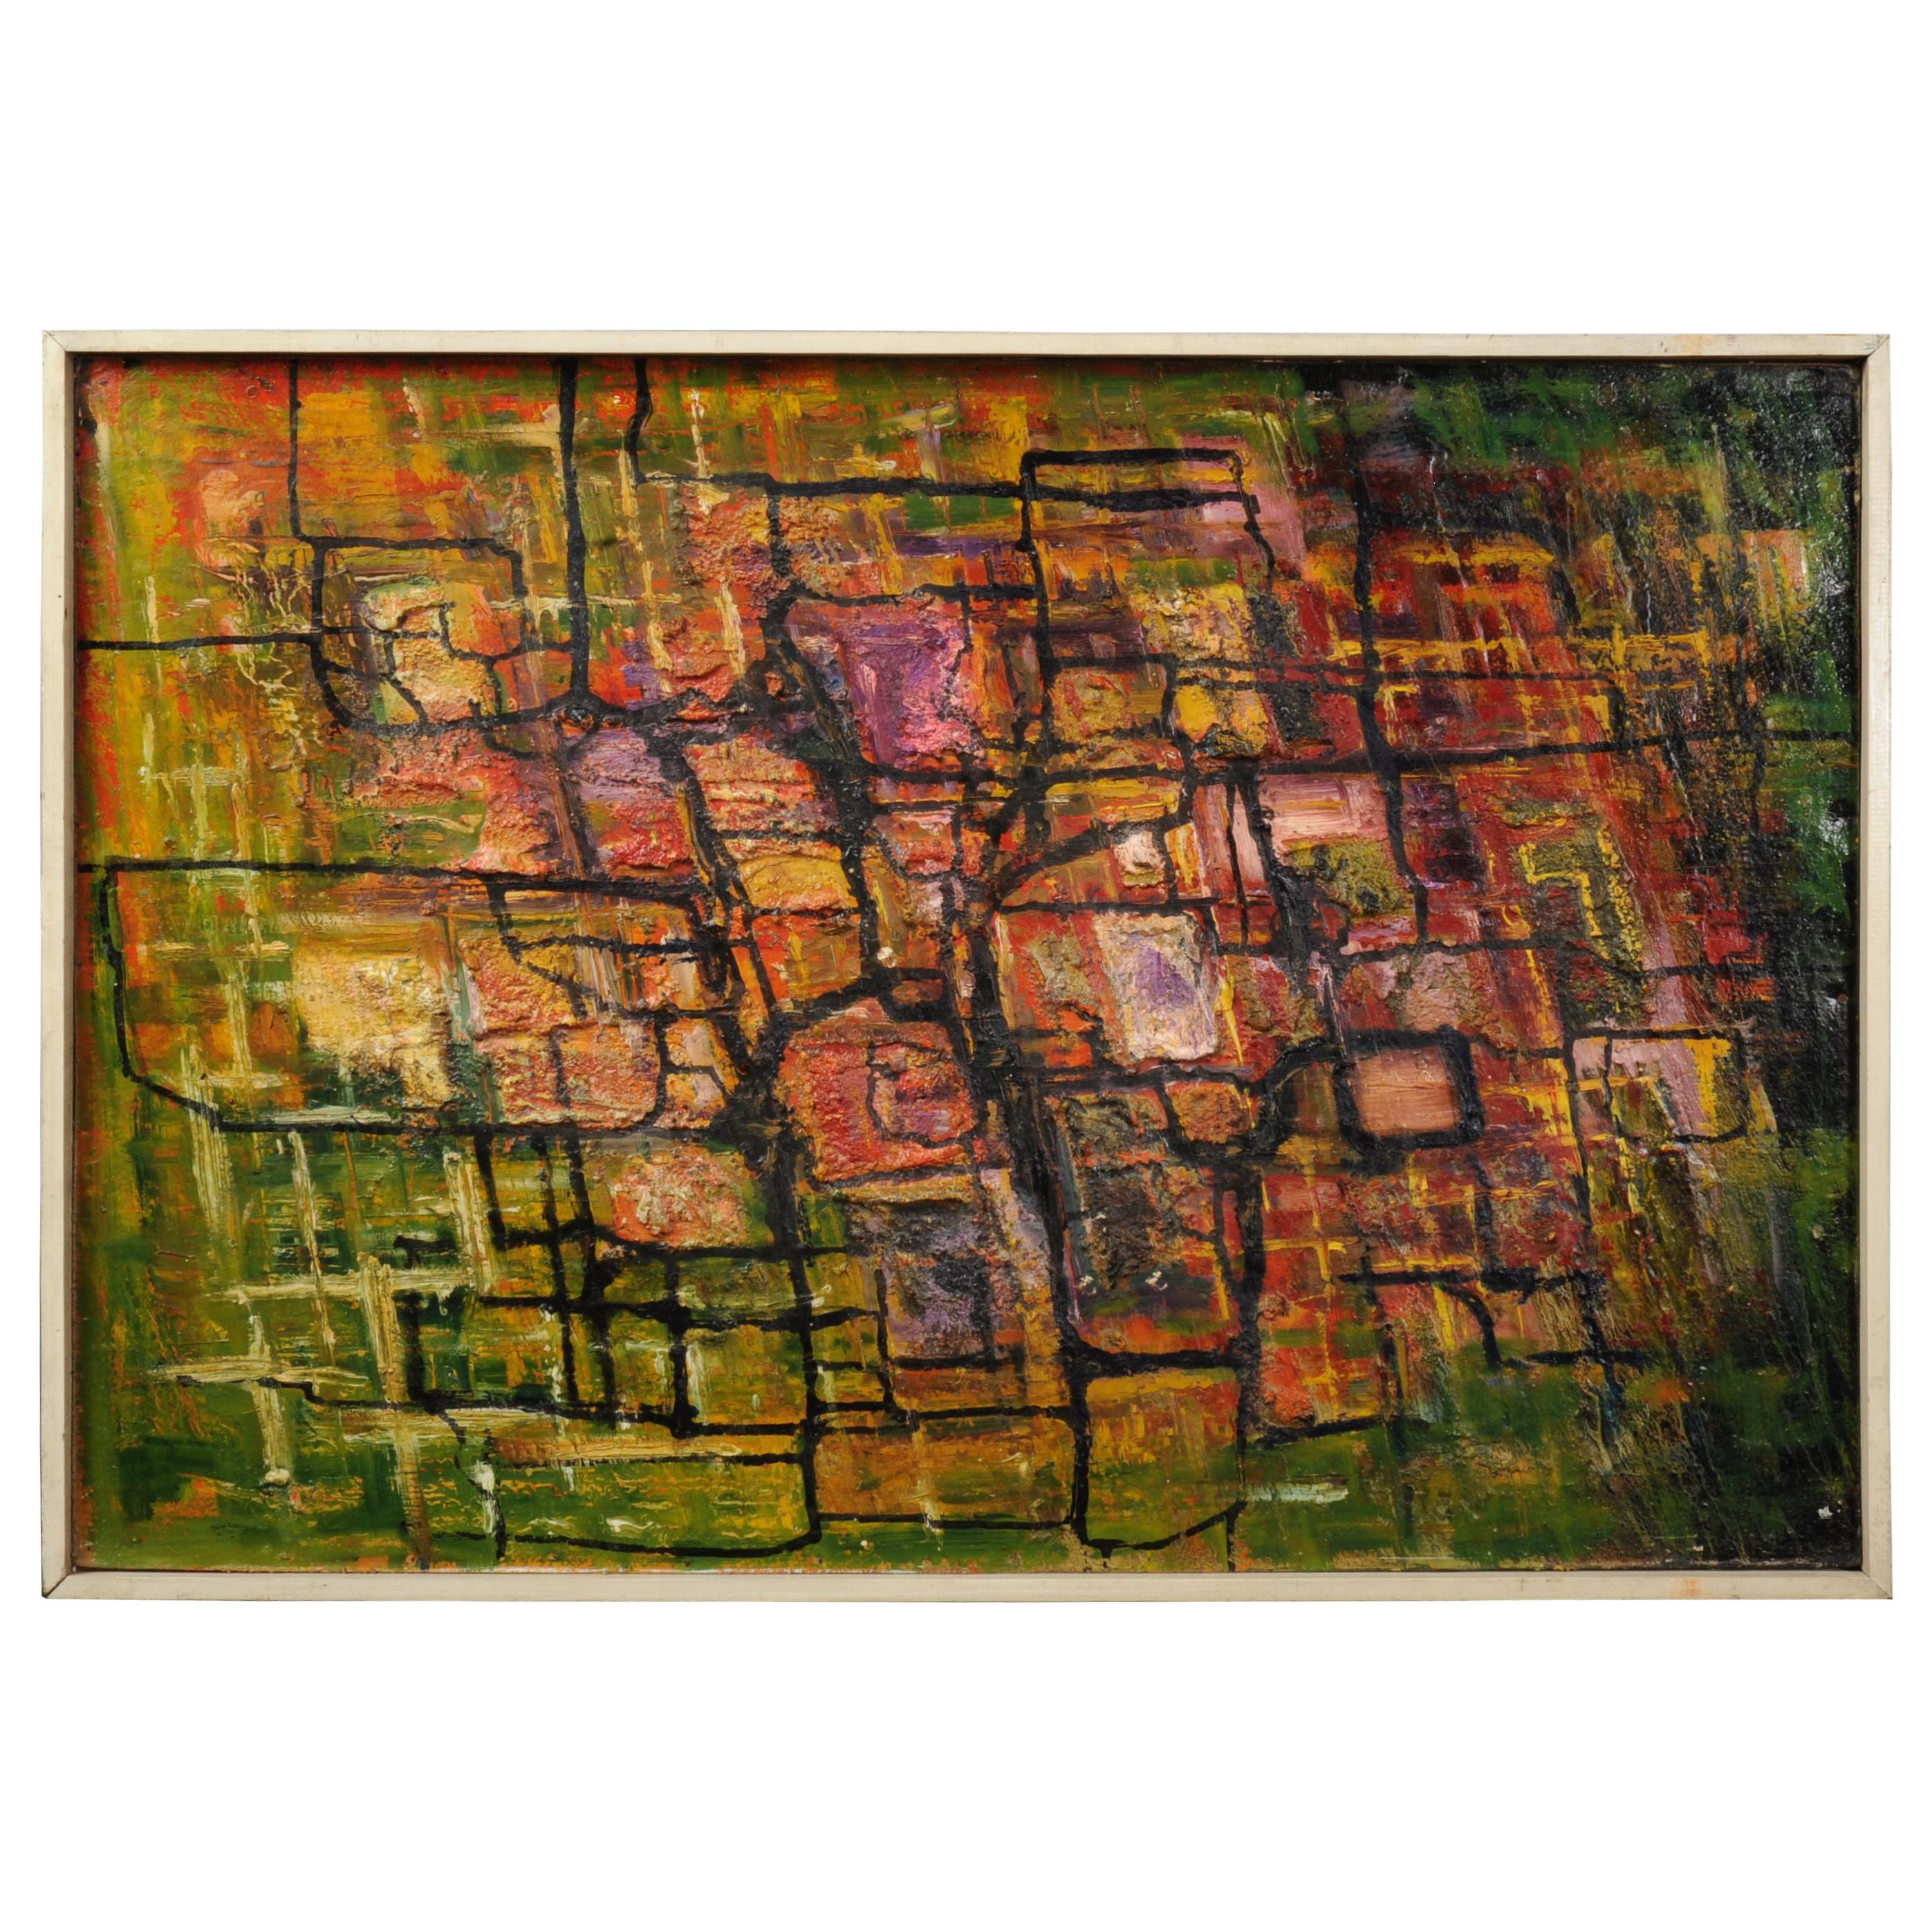 Large Original Midcentury Abstract Oil Painting by William Ernst Burwell, FRSA